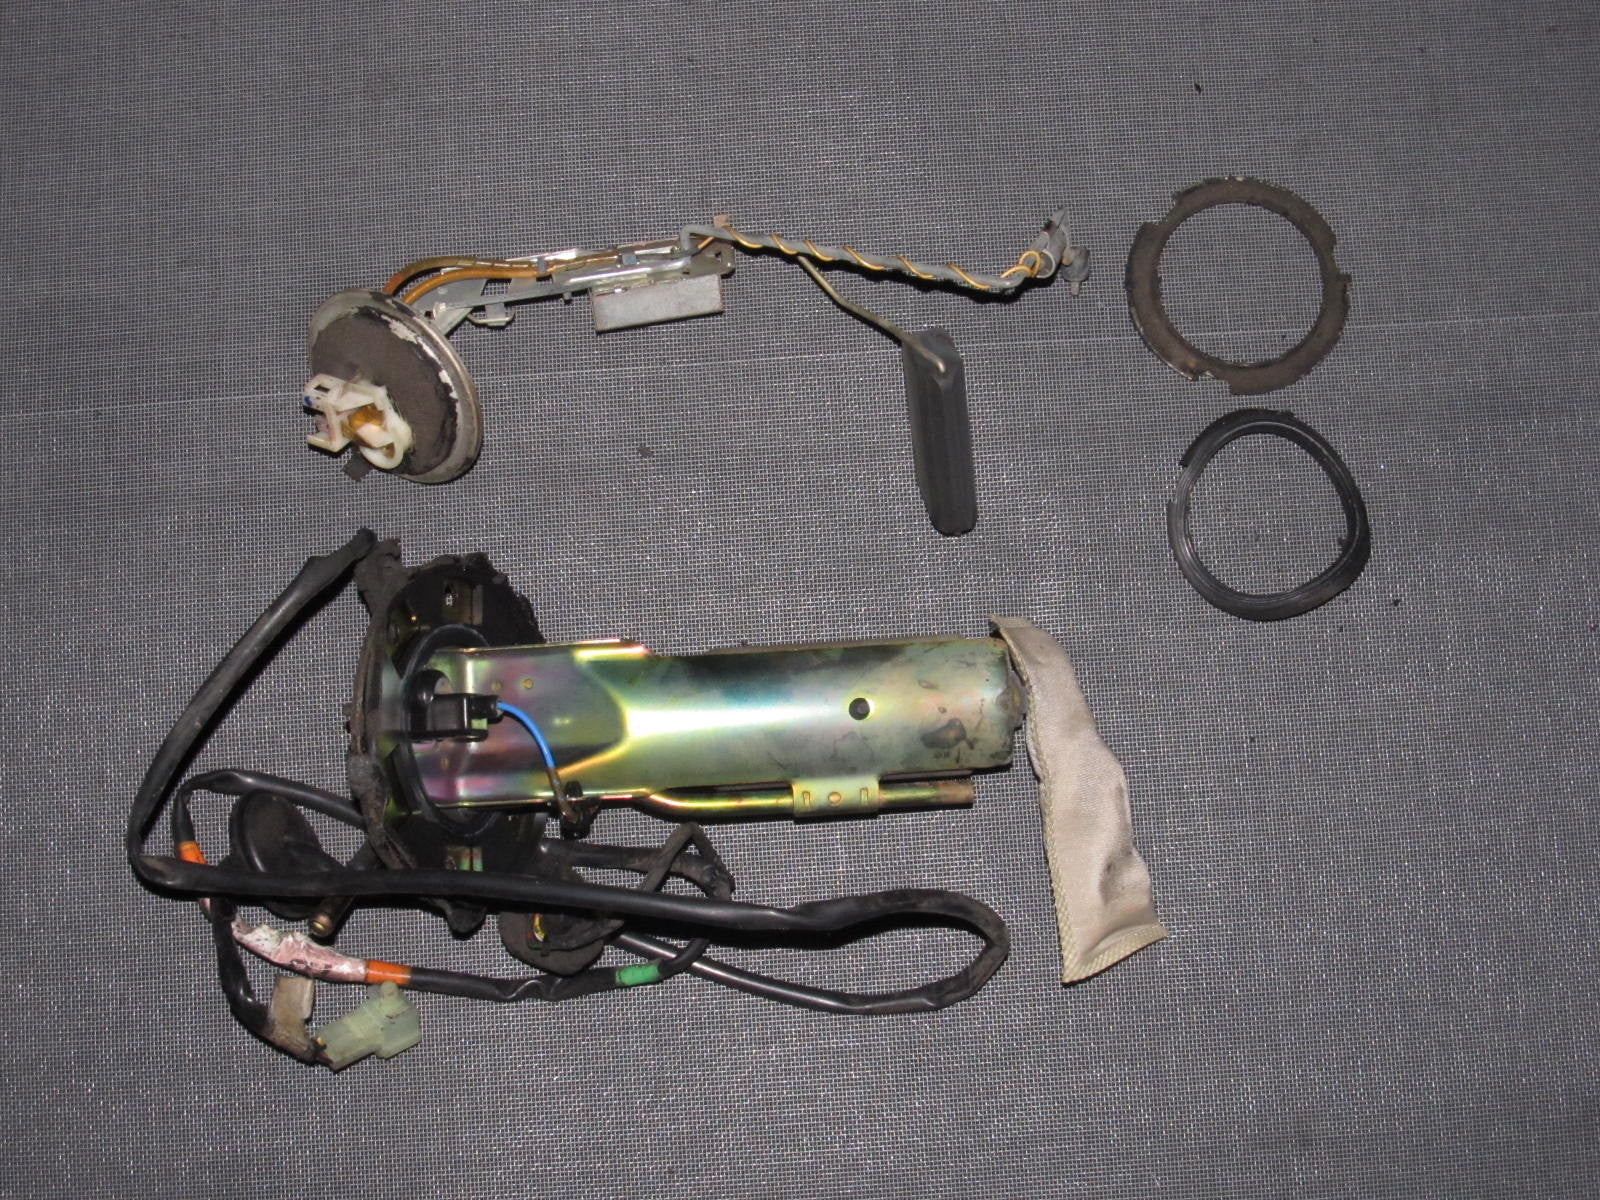 IMG_9528?v=1400700836 90 93 acura integra oem fuel pump with sending unit & floater  at gsmportal.co